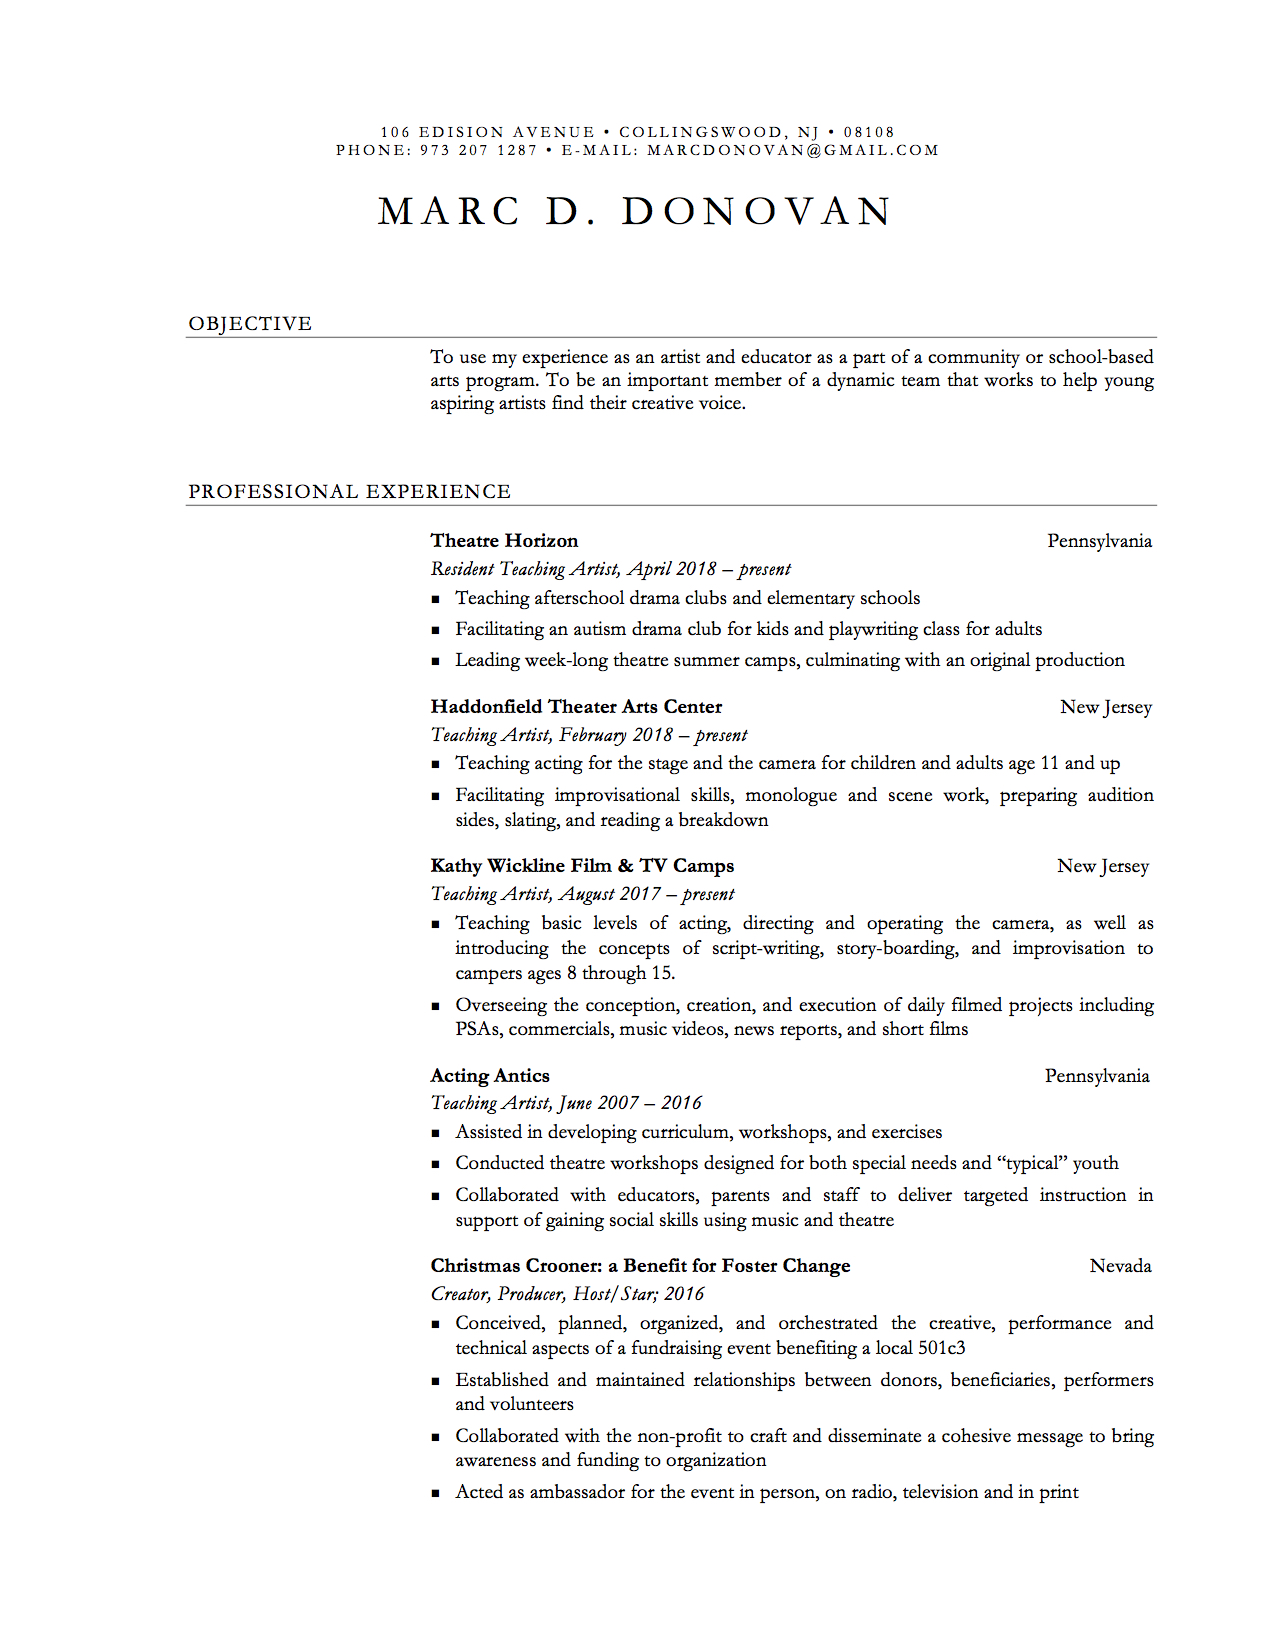 CLICK ON DOCUMENT TO SEE FULL RESUME